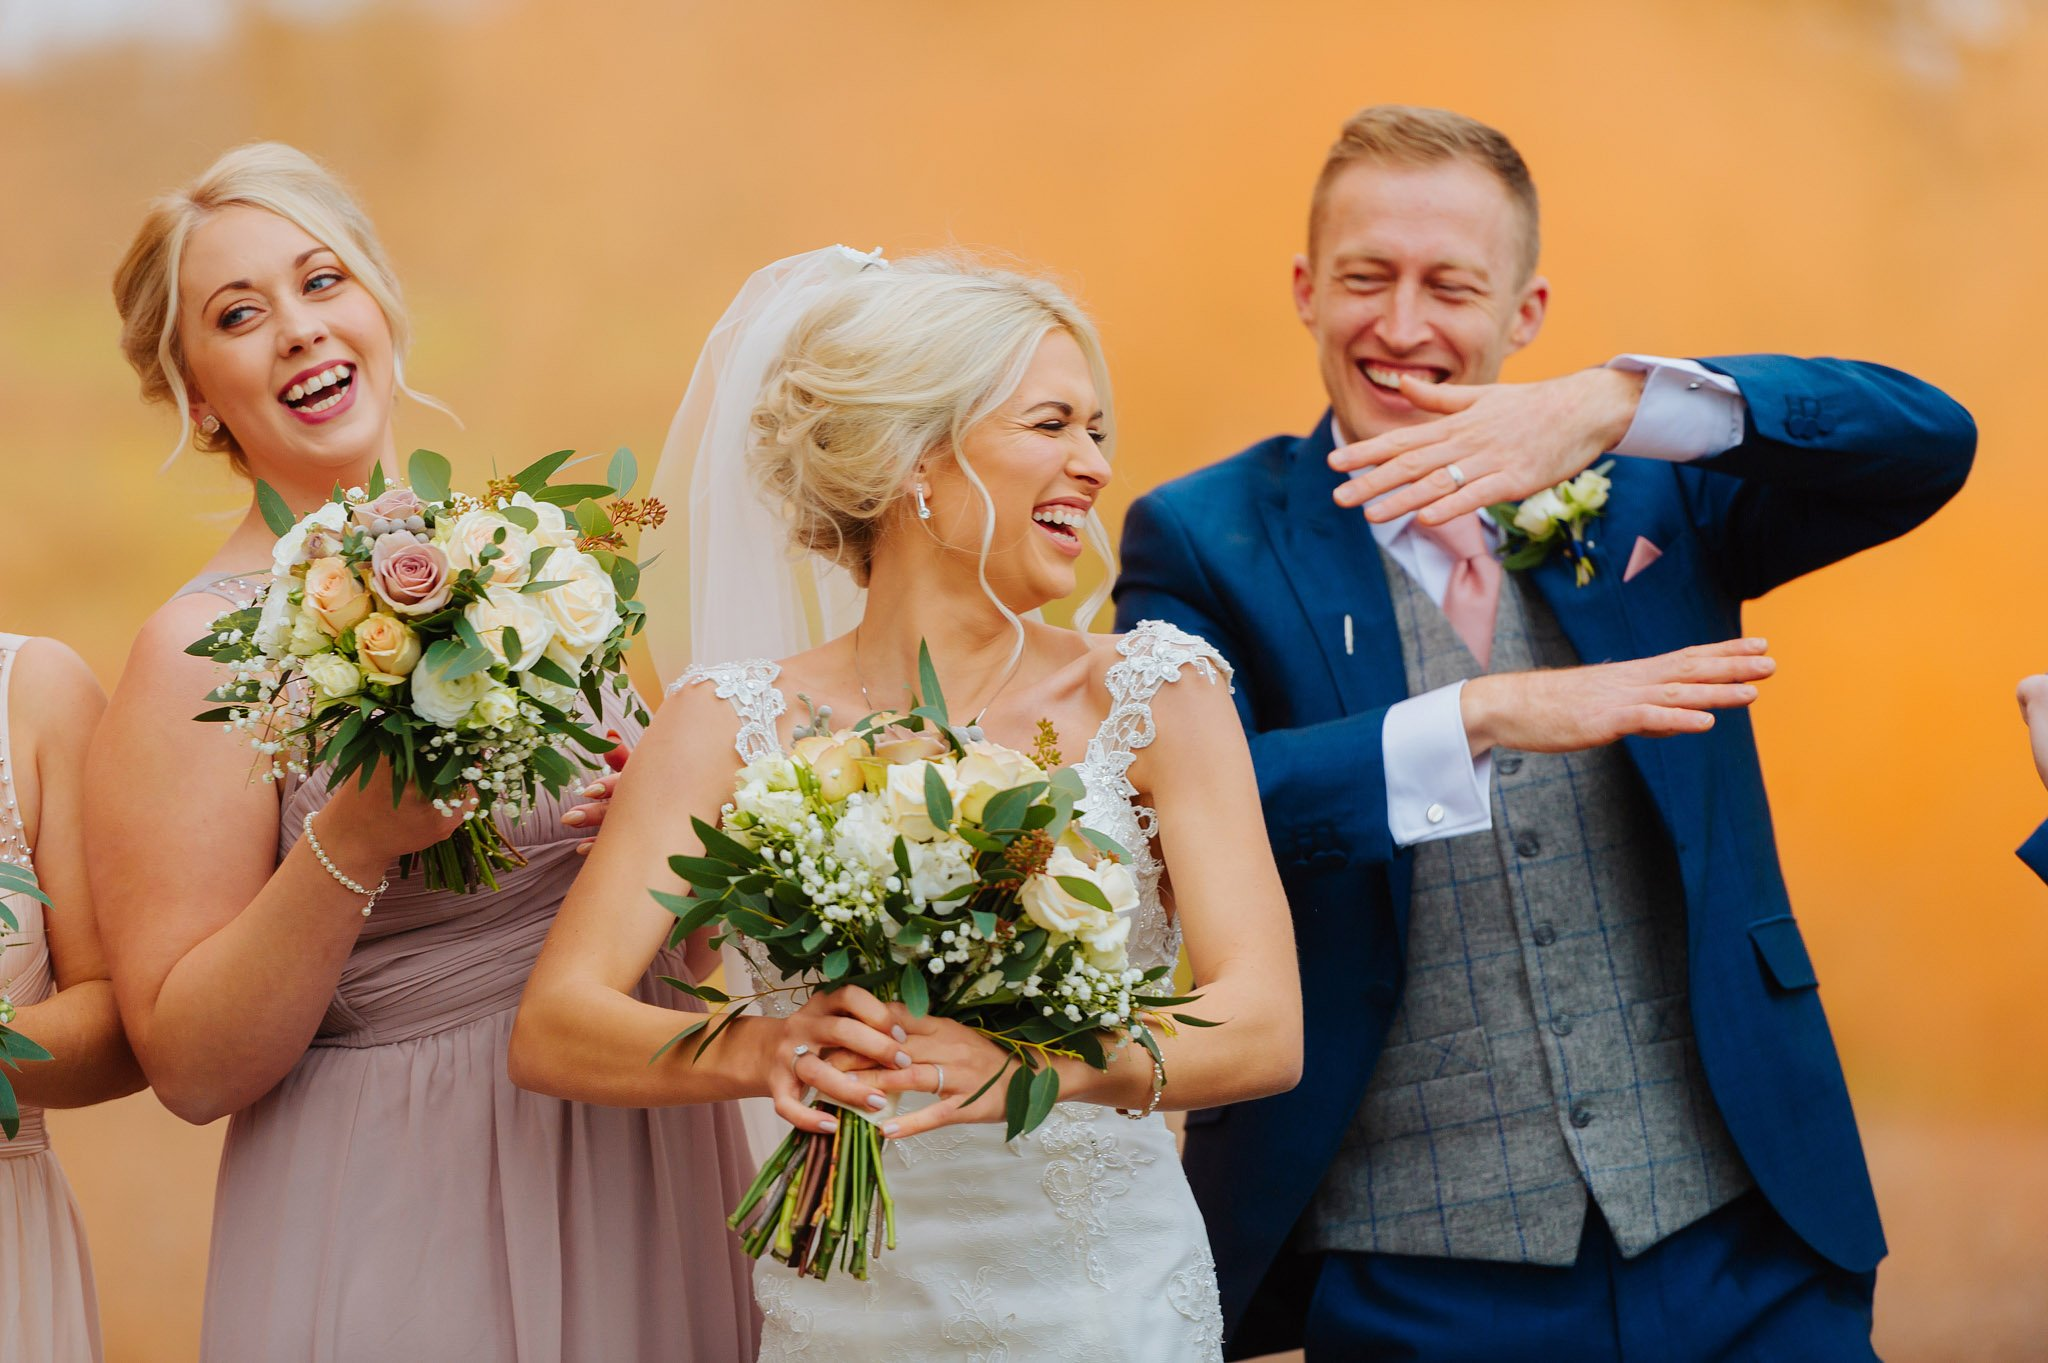 lemore manor wedding herefordshire 80 - Lemore Manor wedding, Herefordshire - West Midlands | Sadie + Ken